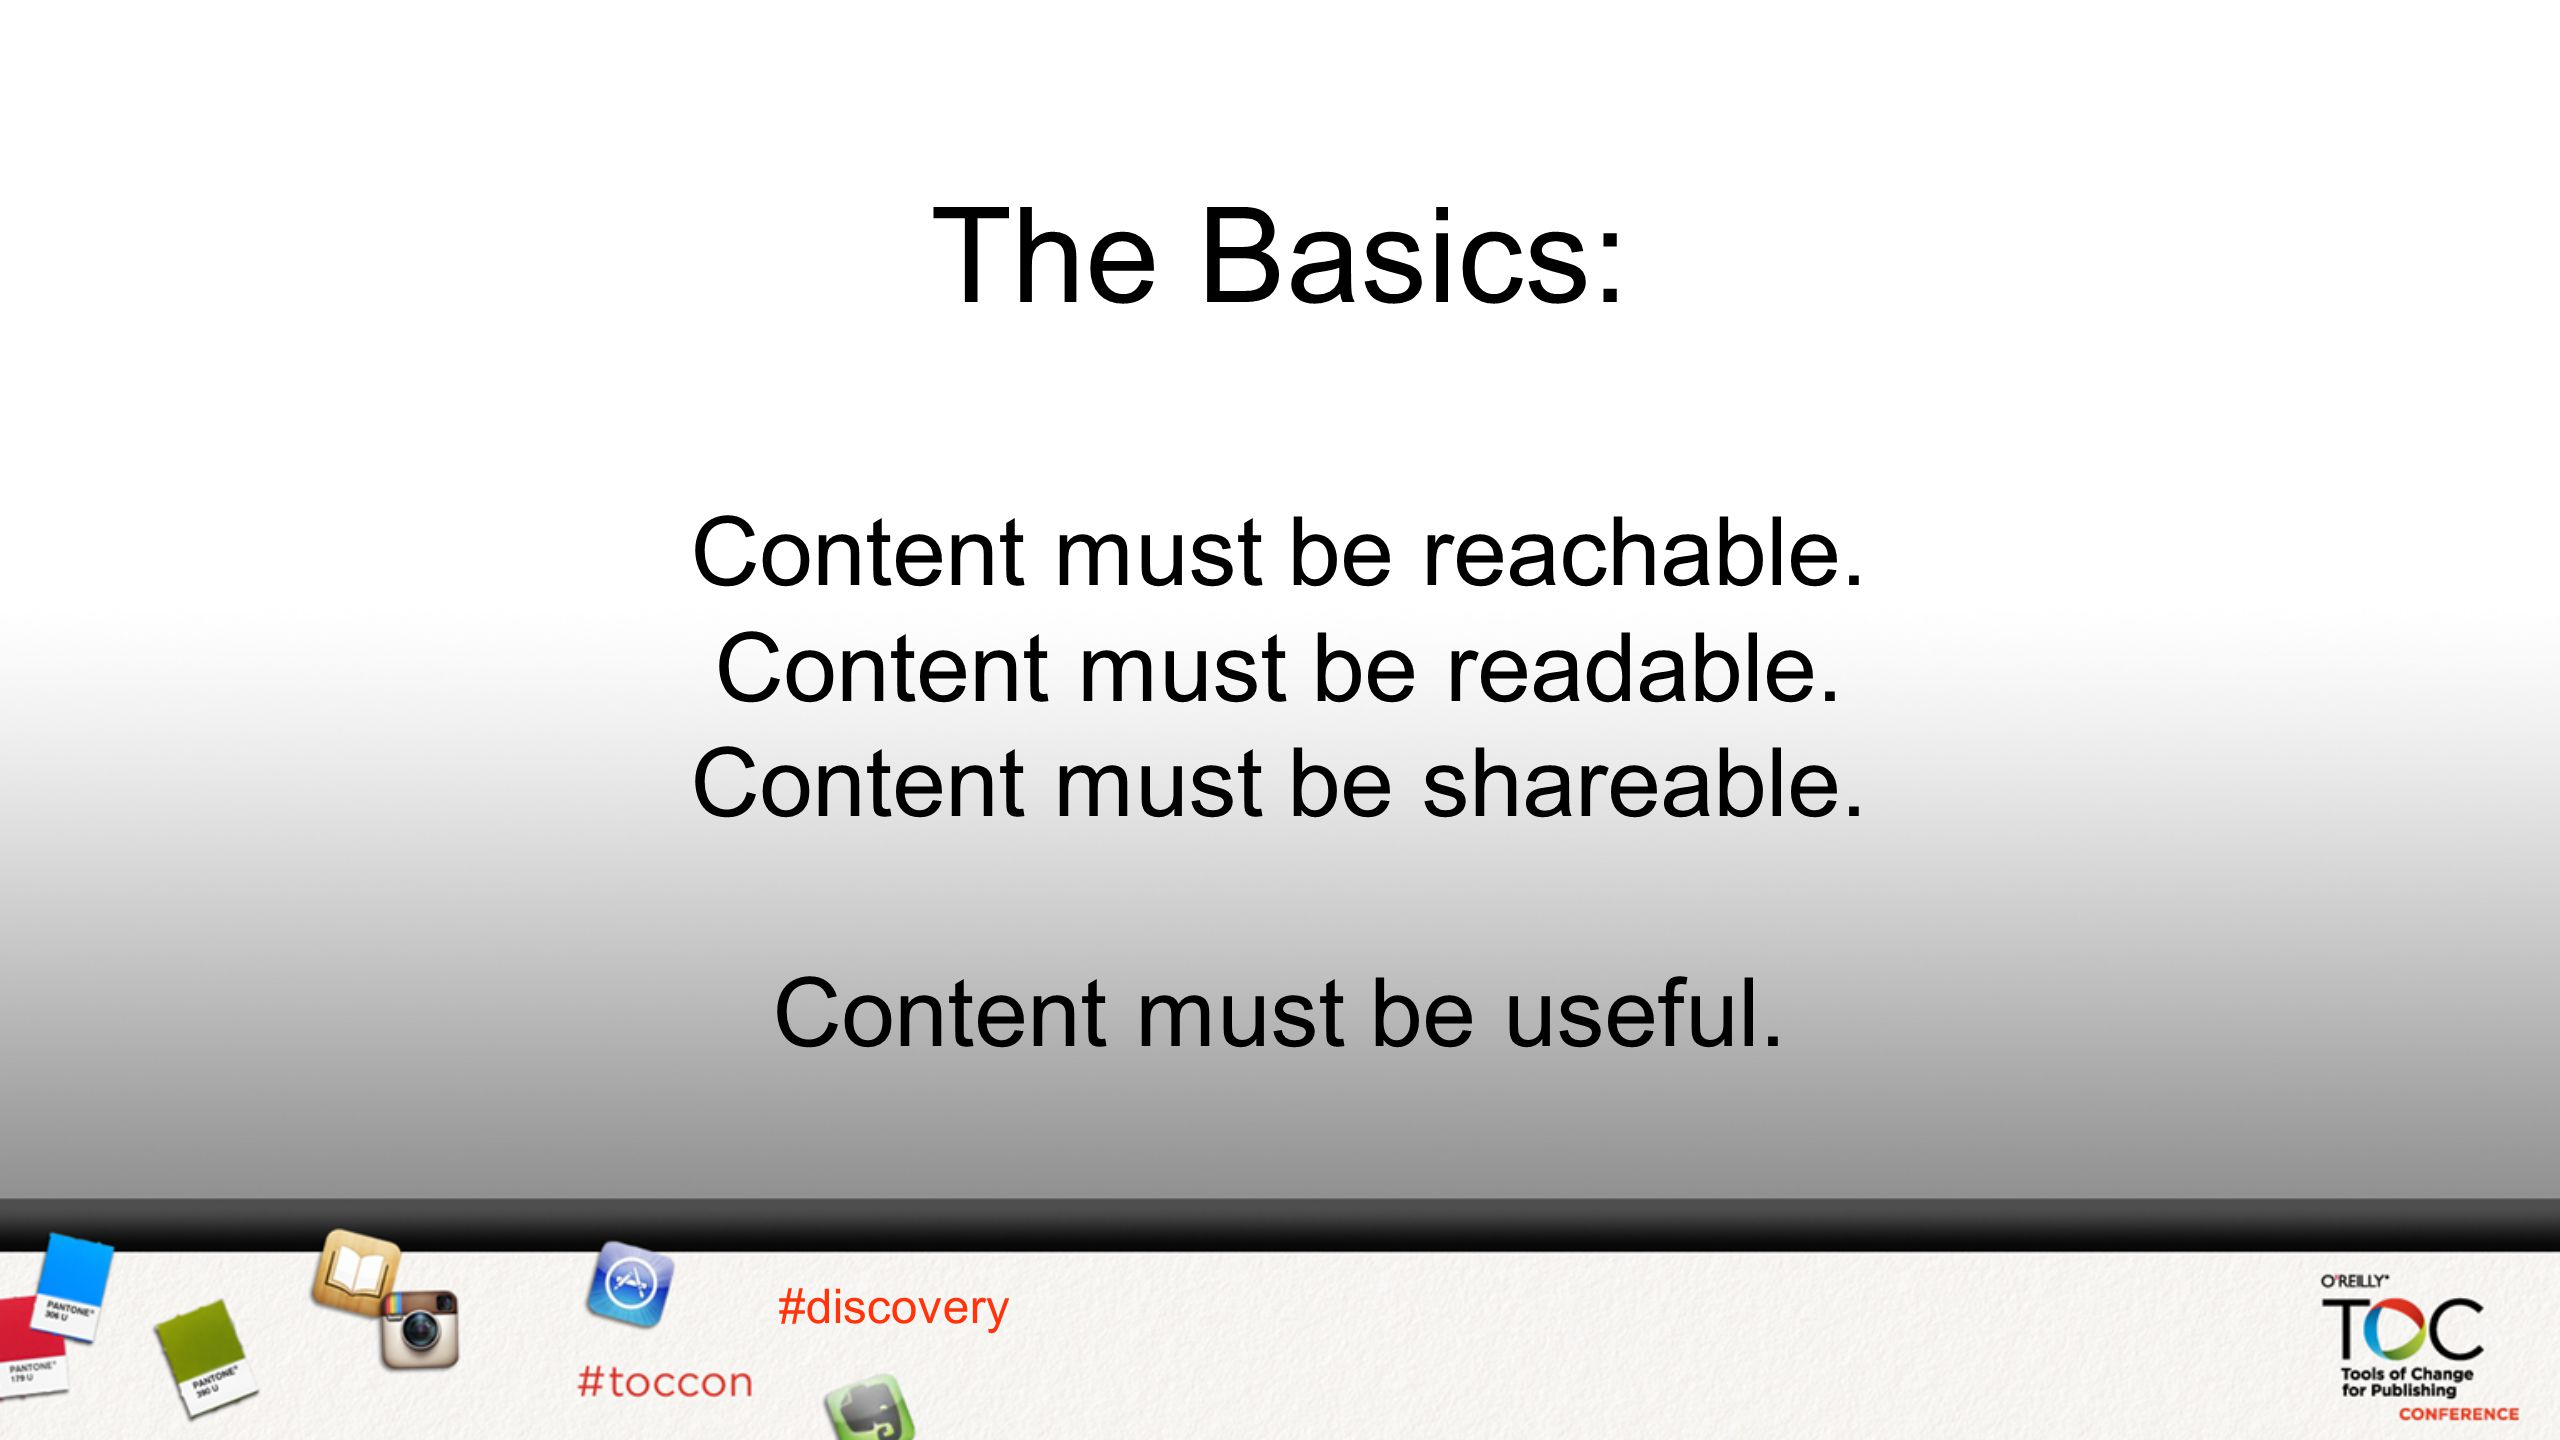 #discovery The Basics: Content must be reachable. Content must be readable.